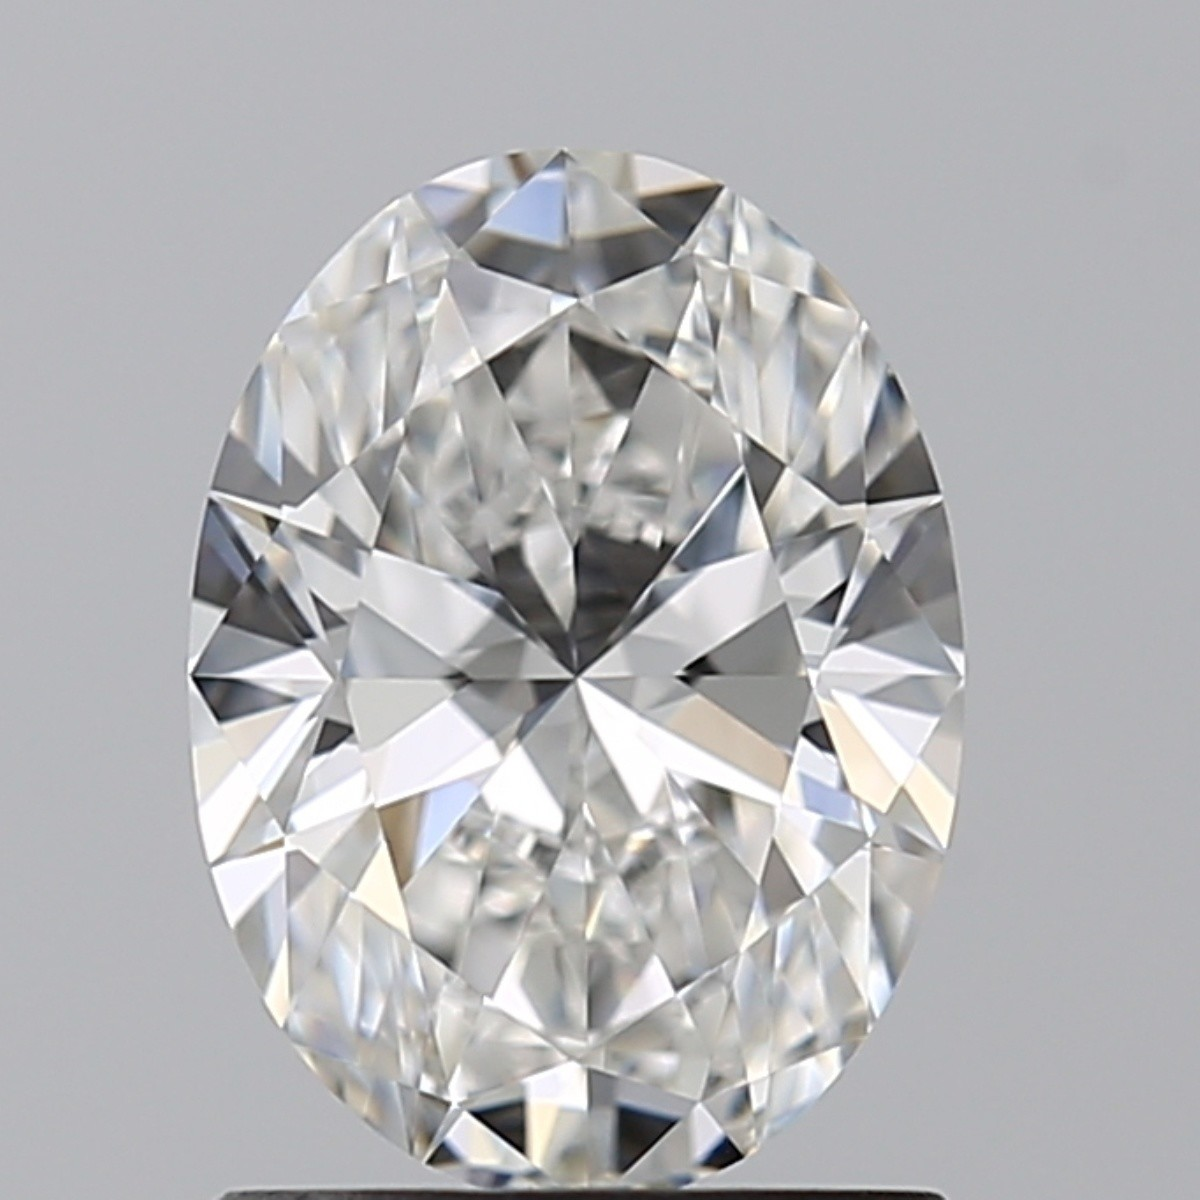 1.01 Carat Oval Diamond (E/VVS1)